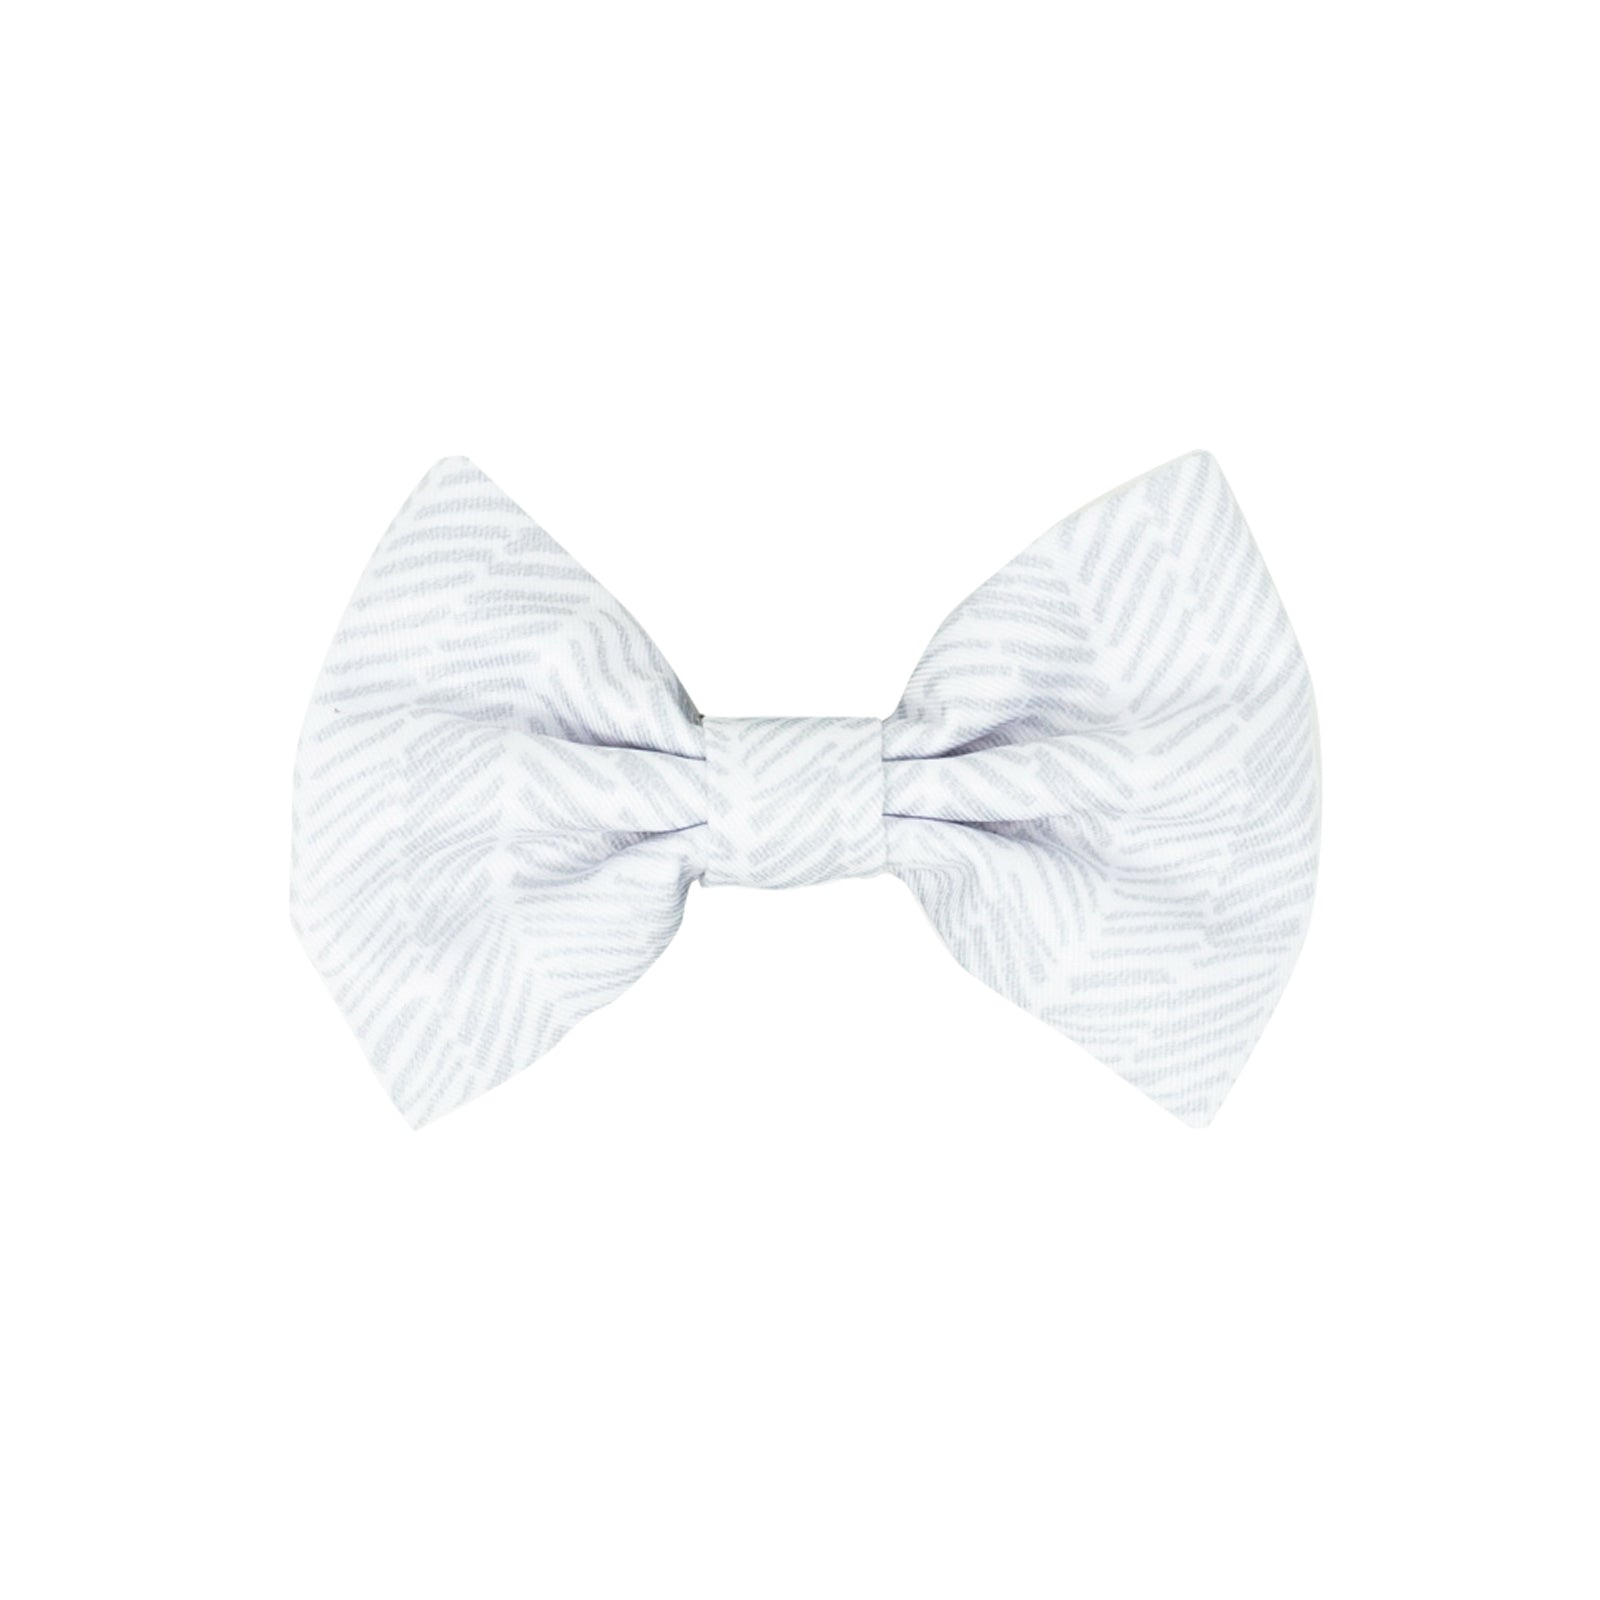 Dog Bow Tie - Silver Lining (Final Sale)